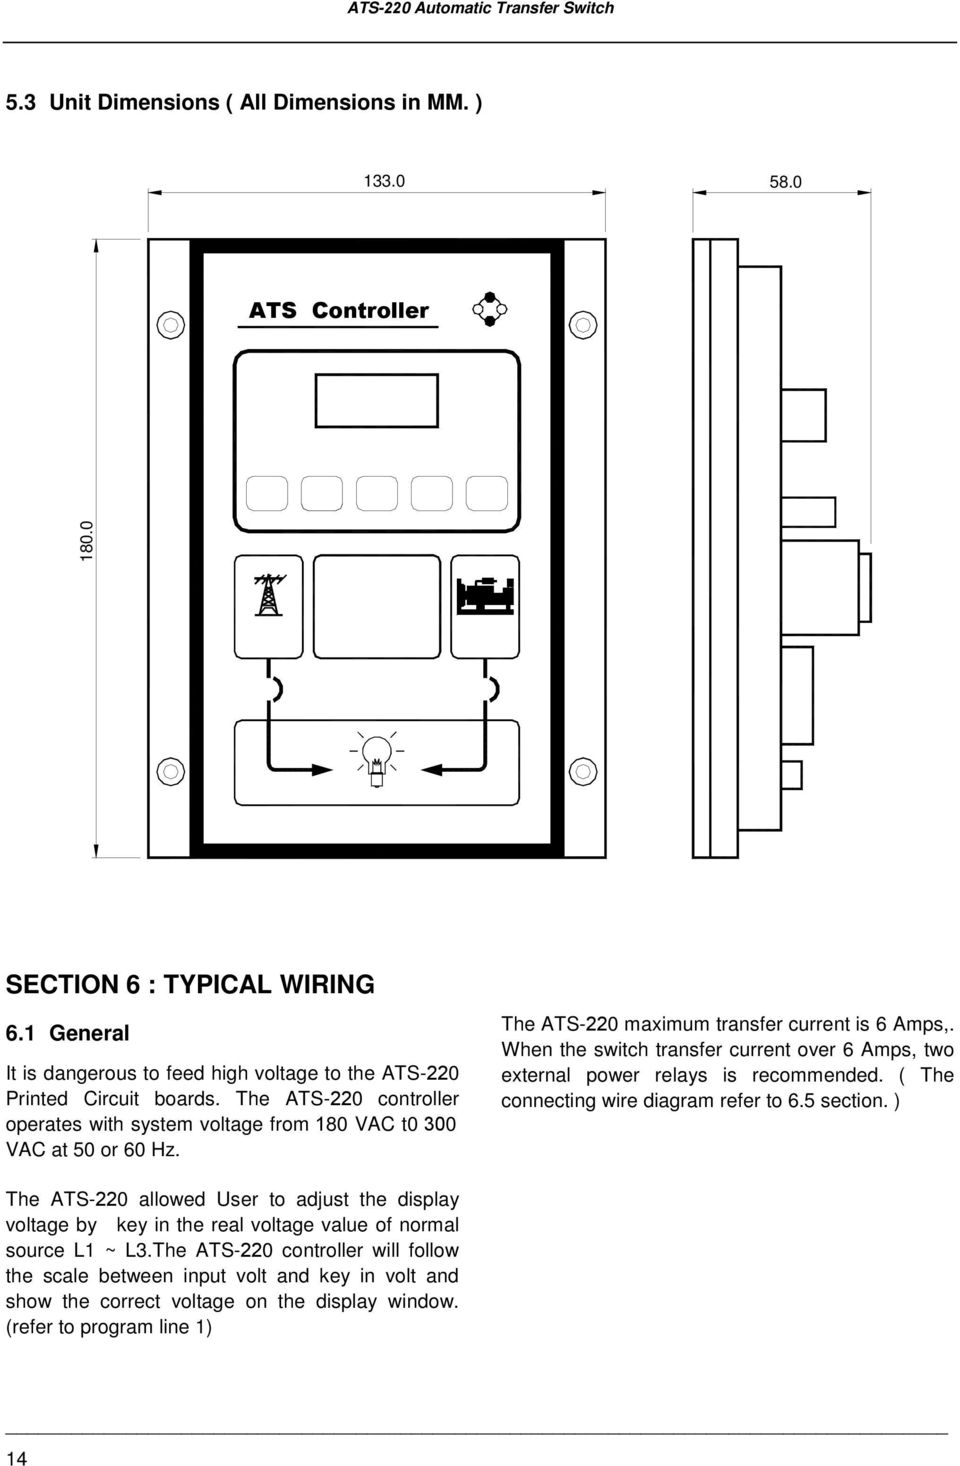 Automatic Transfer Switch Control Unit Operator S Manual Pdf Honda Wiring Diagram The Ats 220 Maximum Current Is 6 Amps When